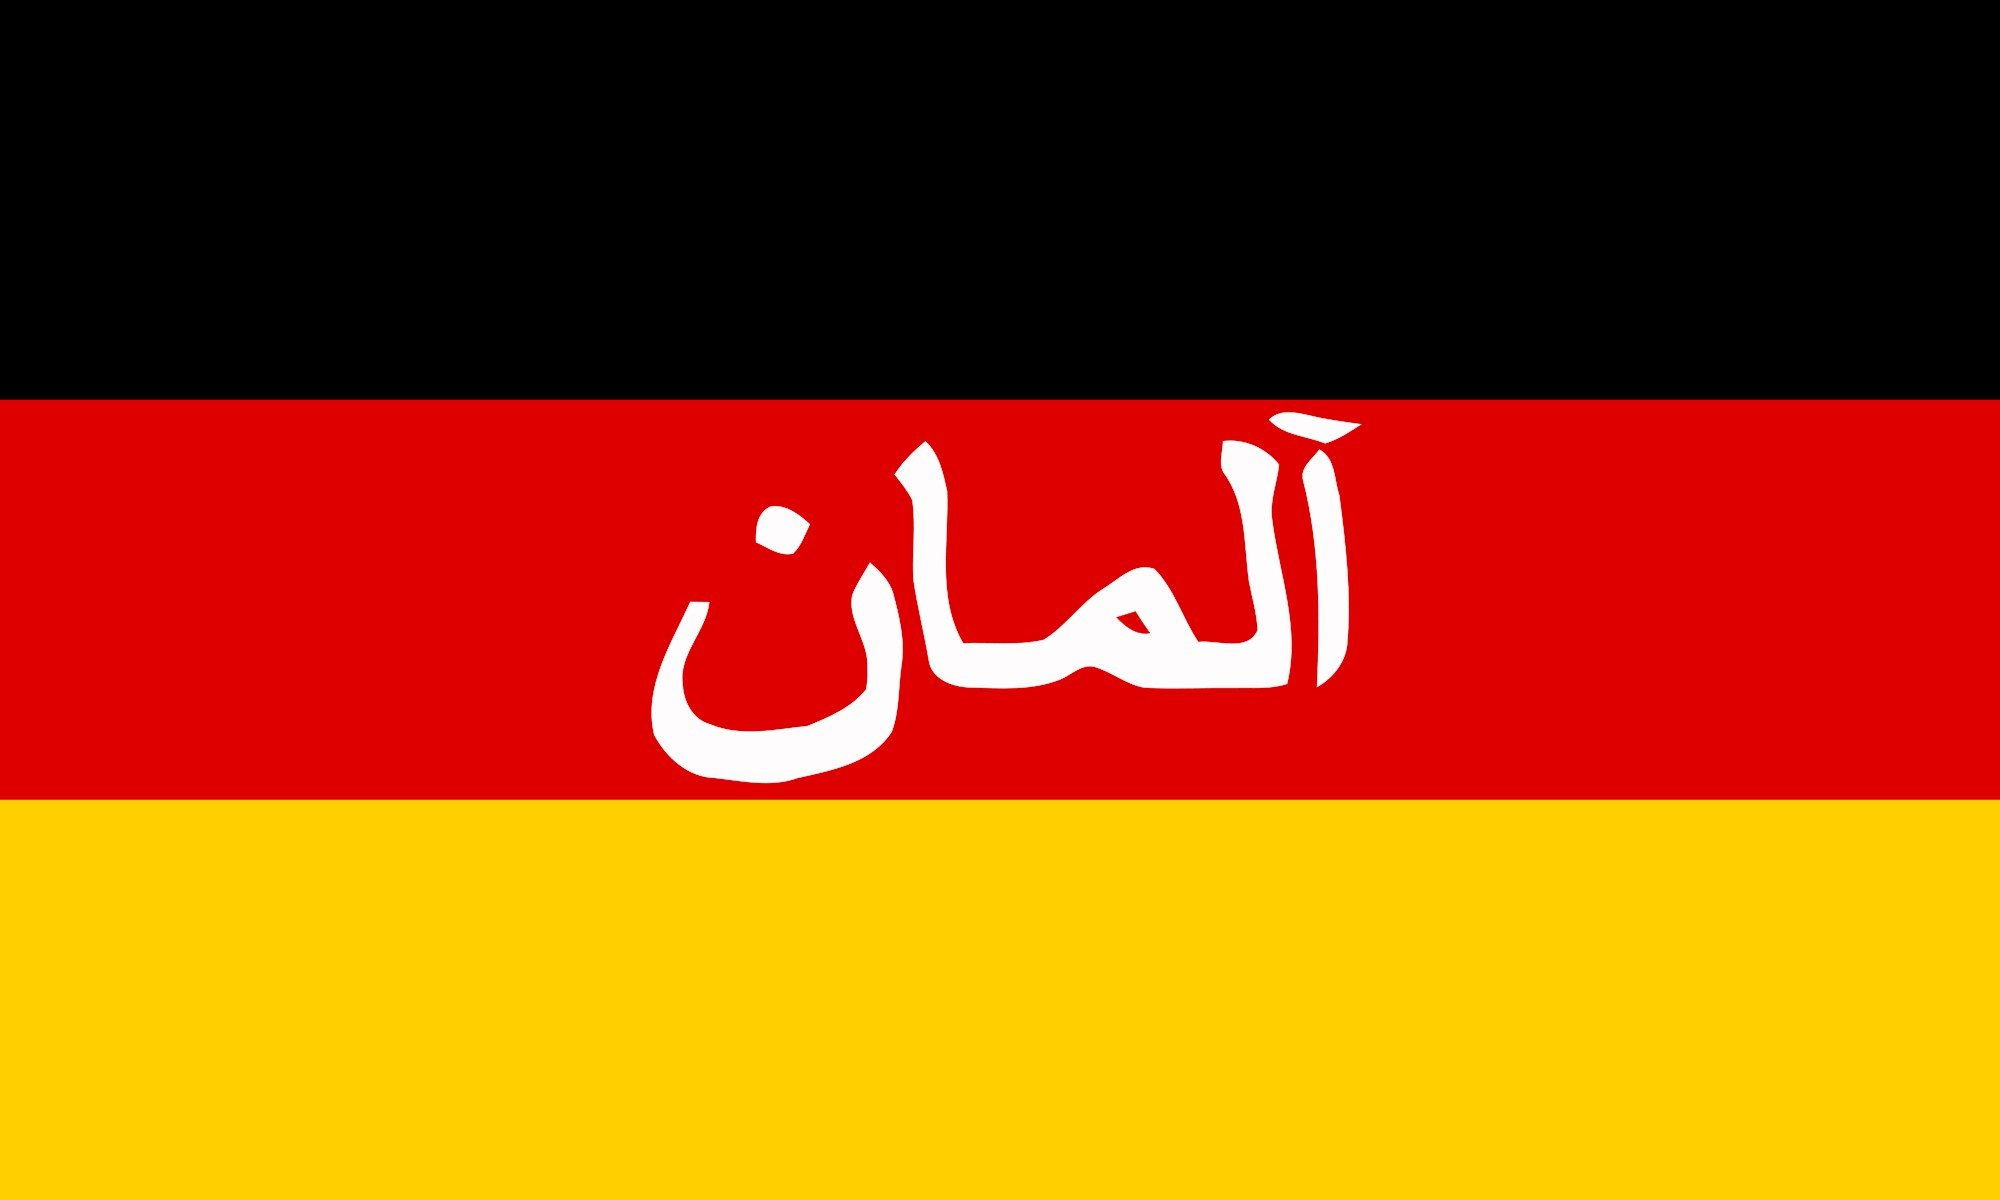 germany flag wallpaper vertical - photo #28